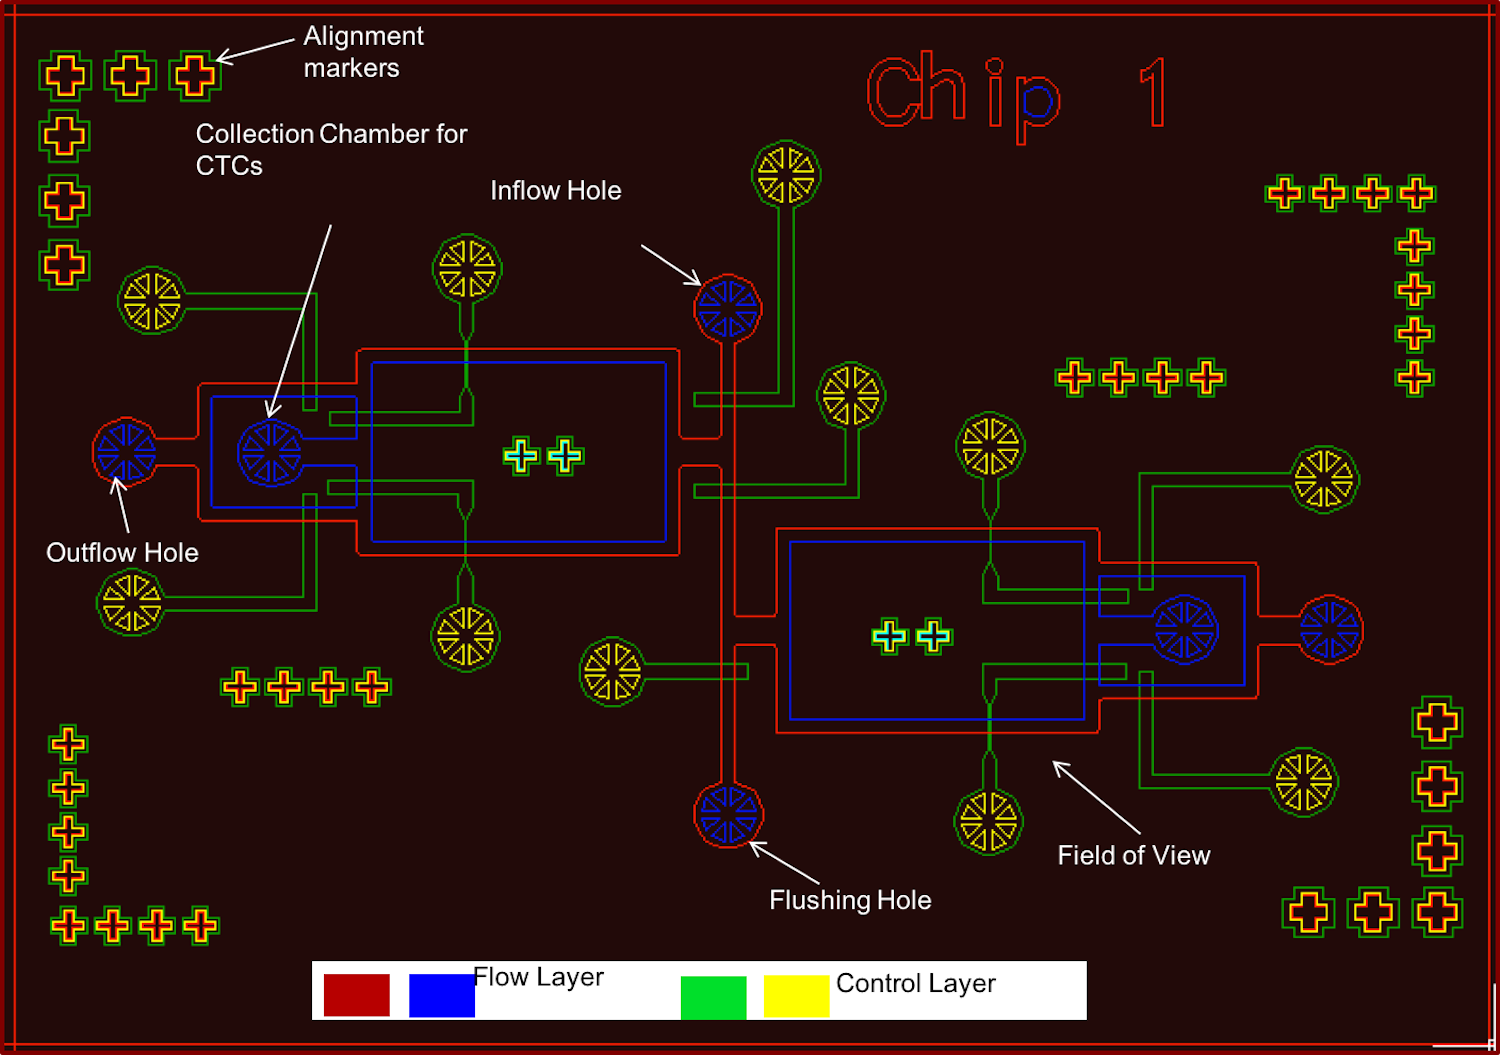 AutoCad device design to extract CTCs from mouse blood.